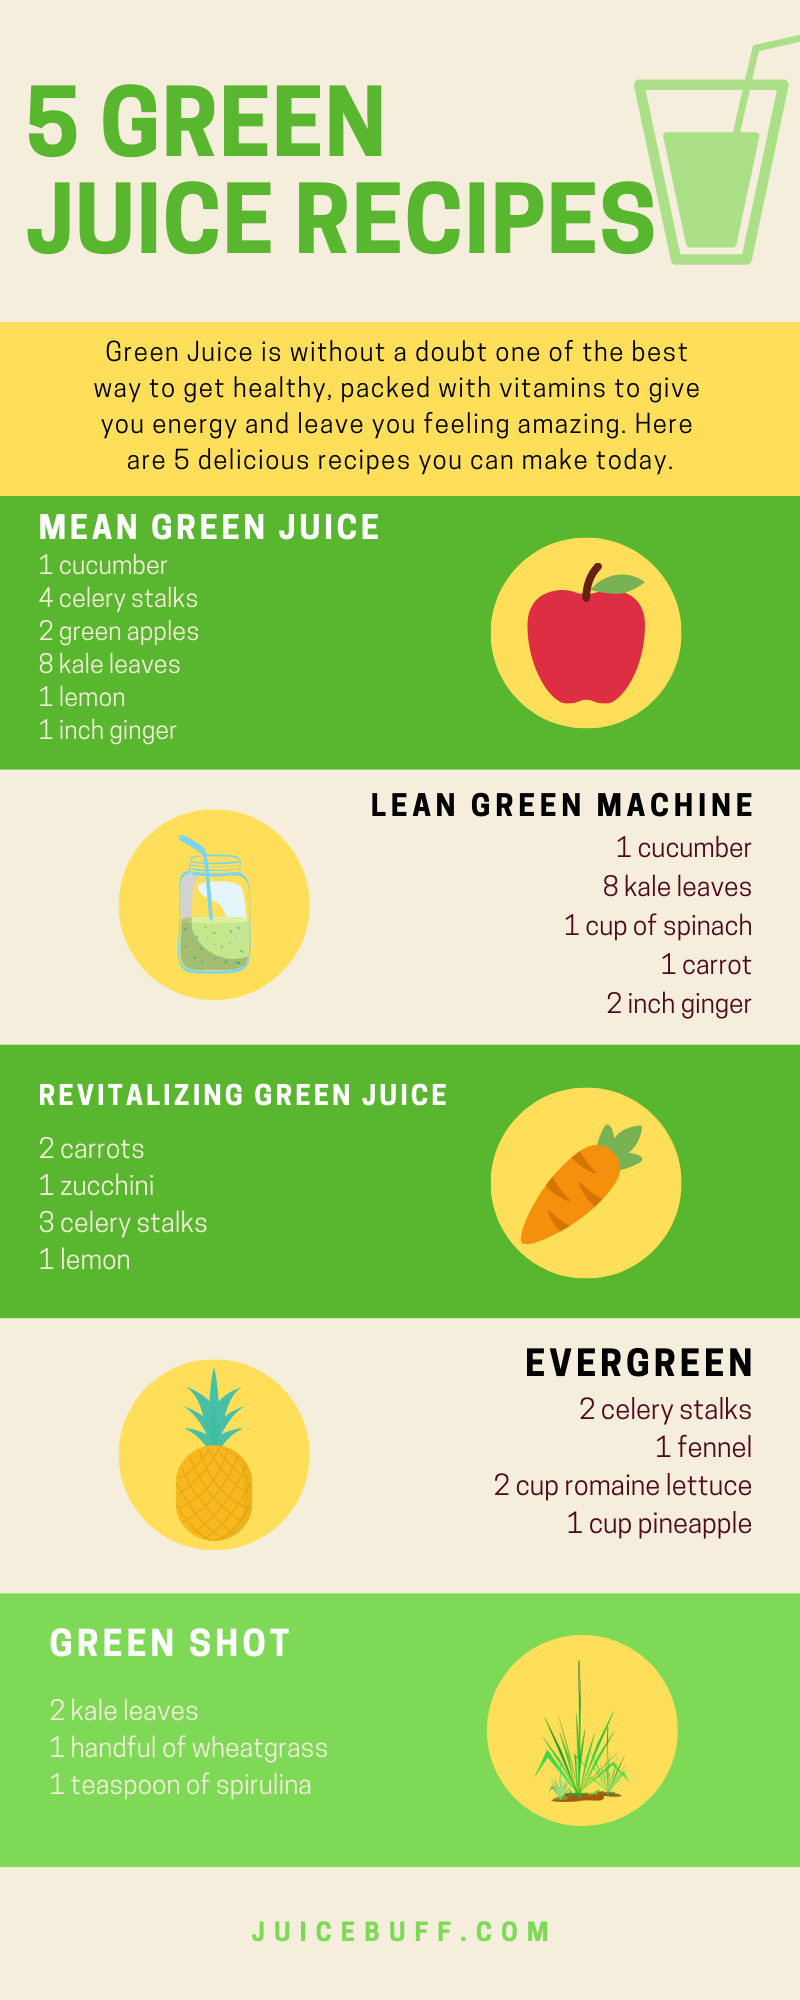 5 Green Juice Recipes Infographic